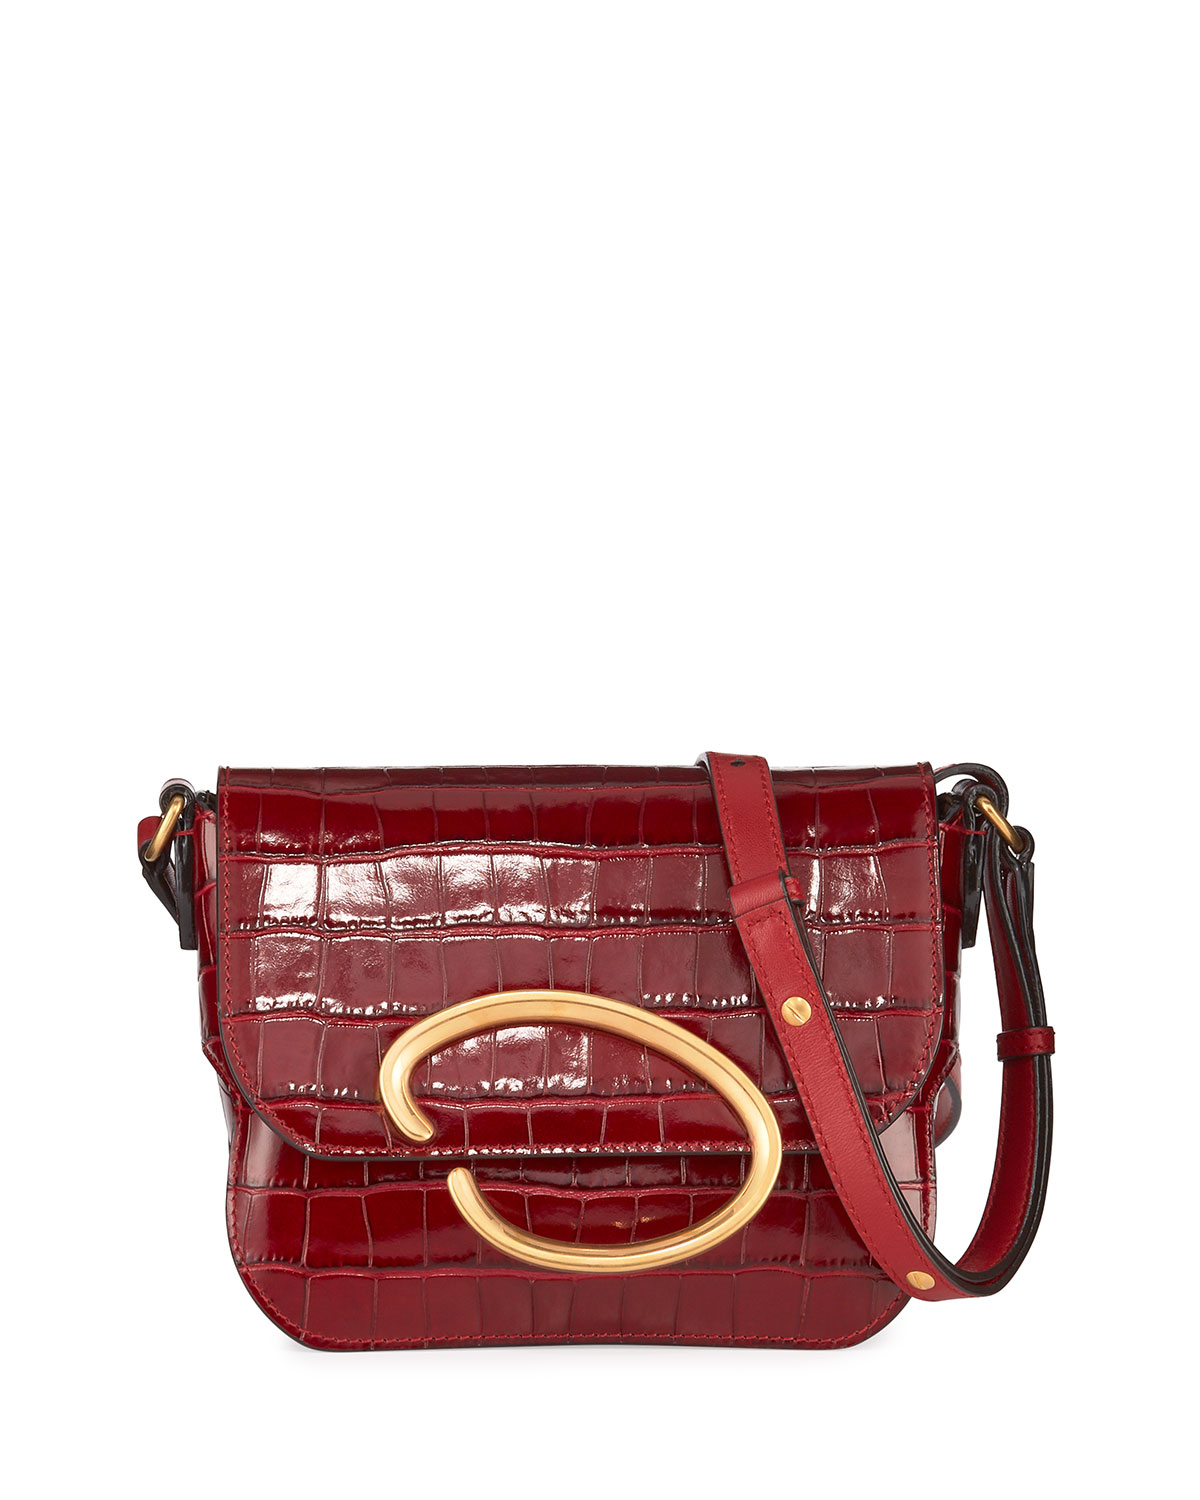 Oscar De La Renta Shoulder OATH MOCK-CROC LEATHER SHOULDER BAG